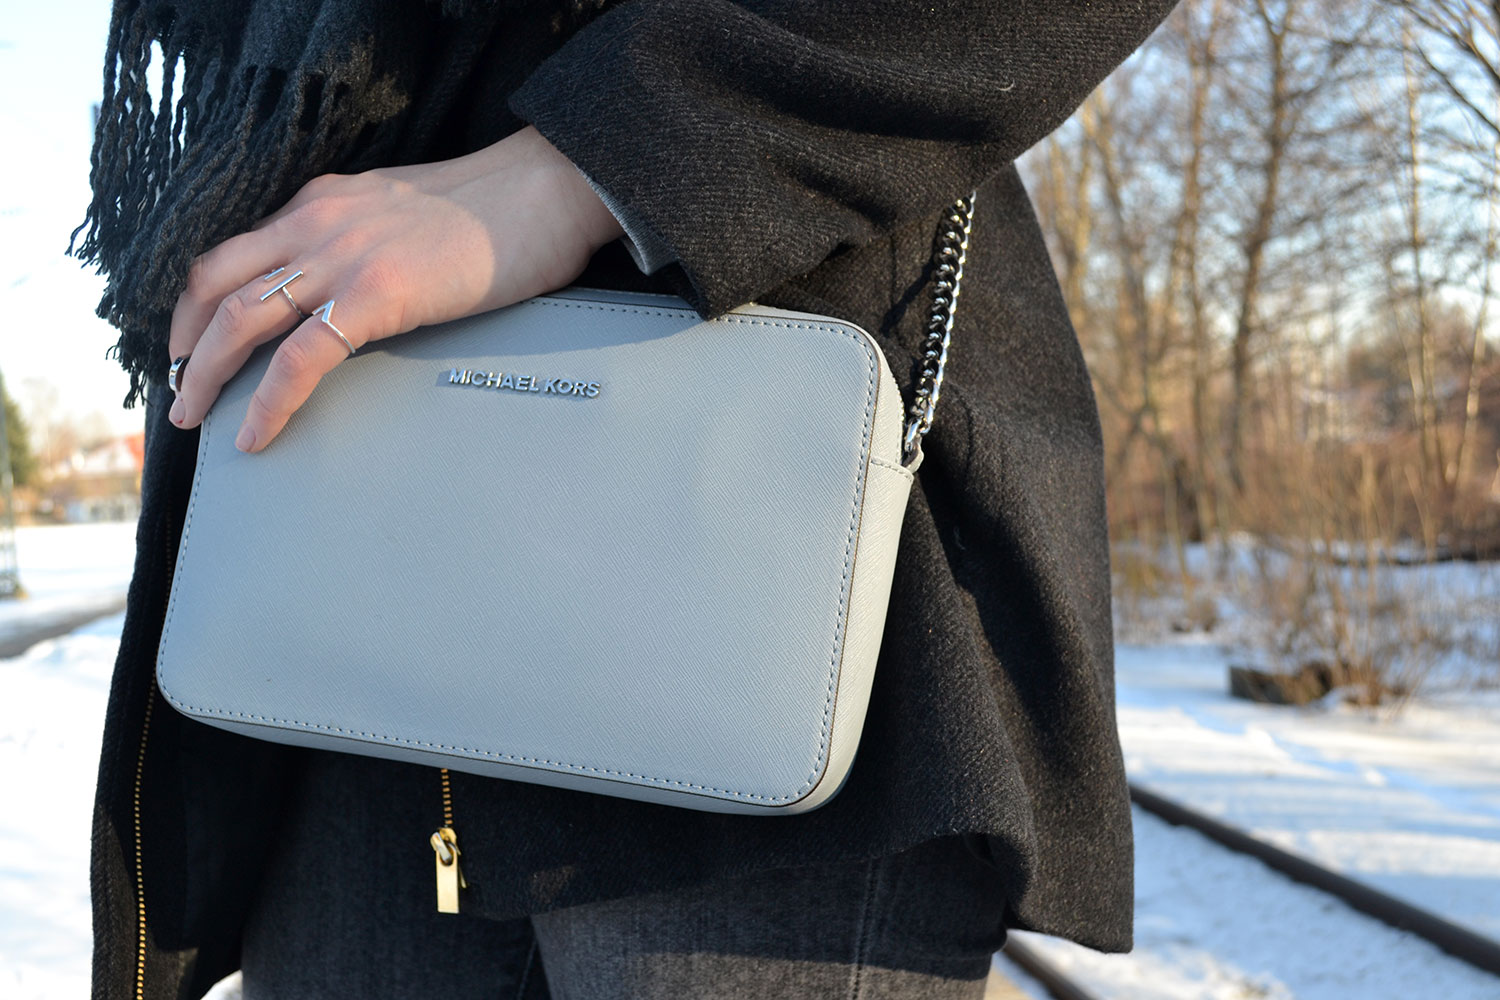 Outfit: All Grey // Michael Kors Crossbody Bag | Munich